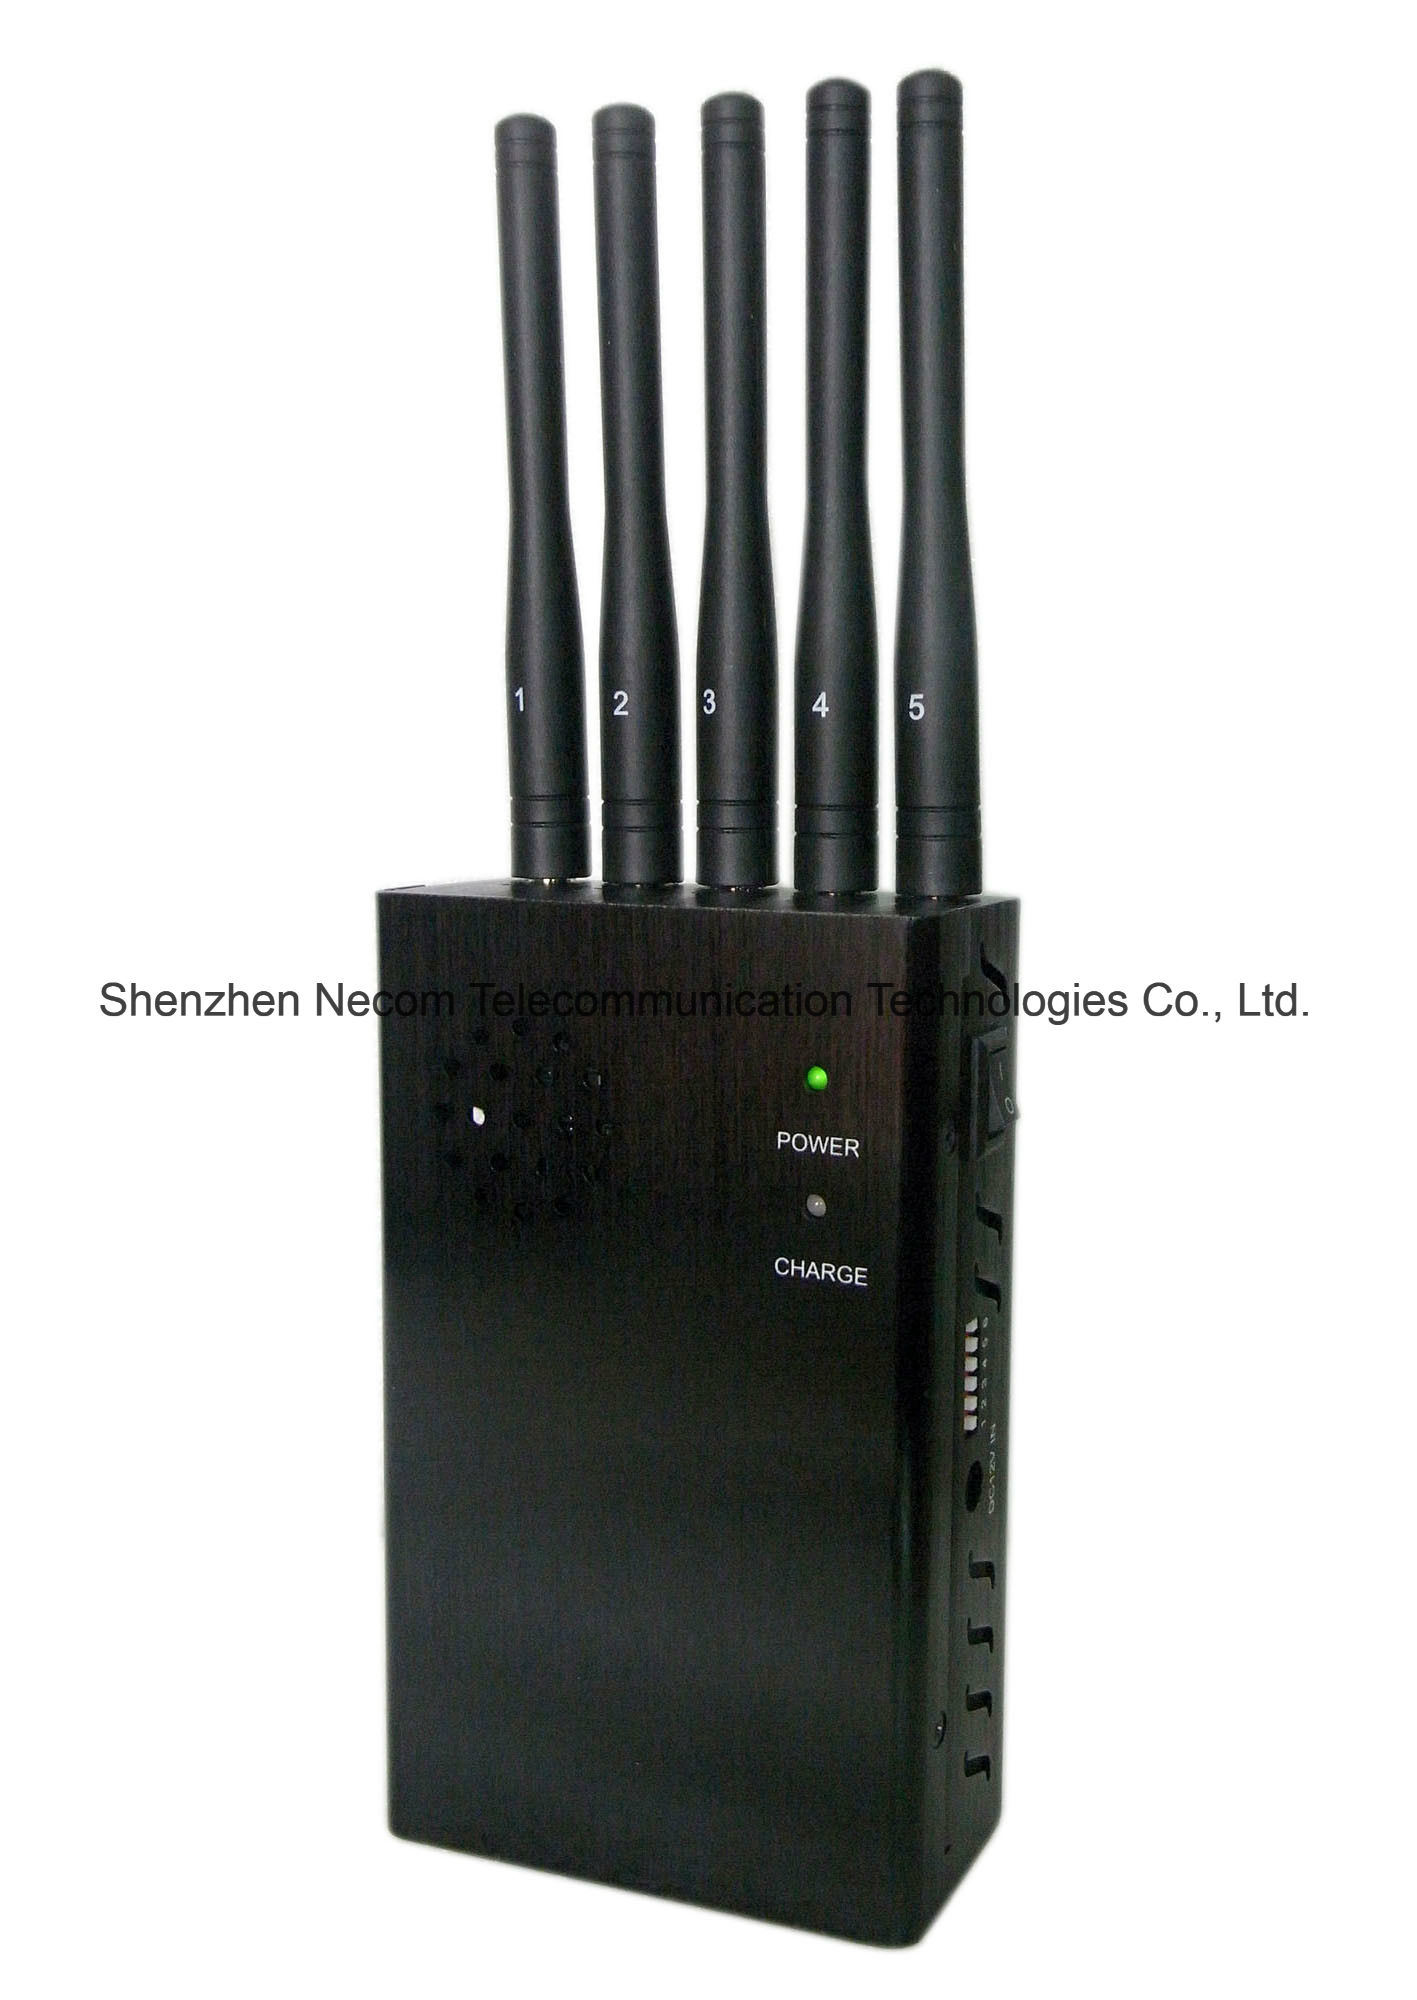 phone jammer paypal customer - China 5 Antenna Big Portable Cell Jammer, Portable GPS Jammer, Portable WiFi Jammer, Jamming 2g+3G+4G+Gpsl1 - China 5 Band Signal Blockers, Five Antennas Jammers